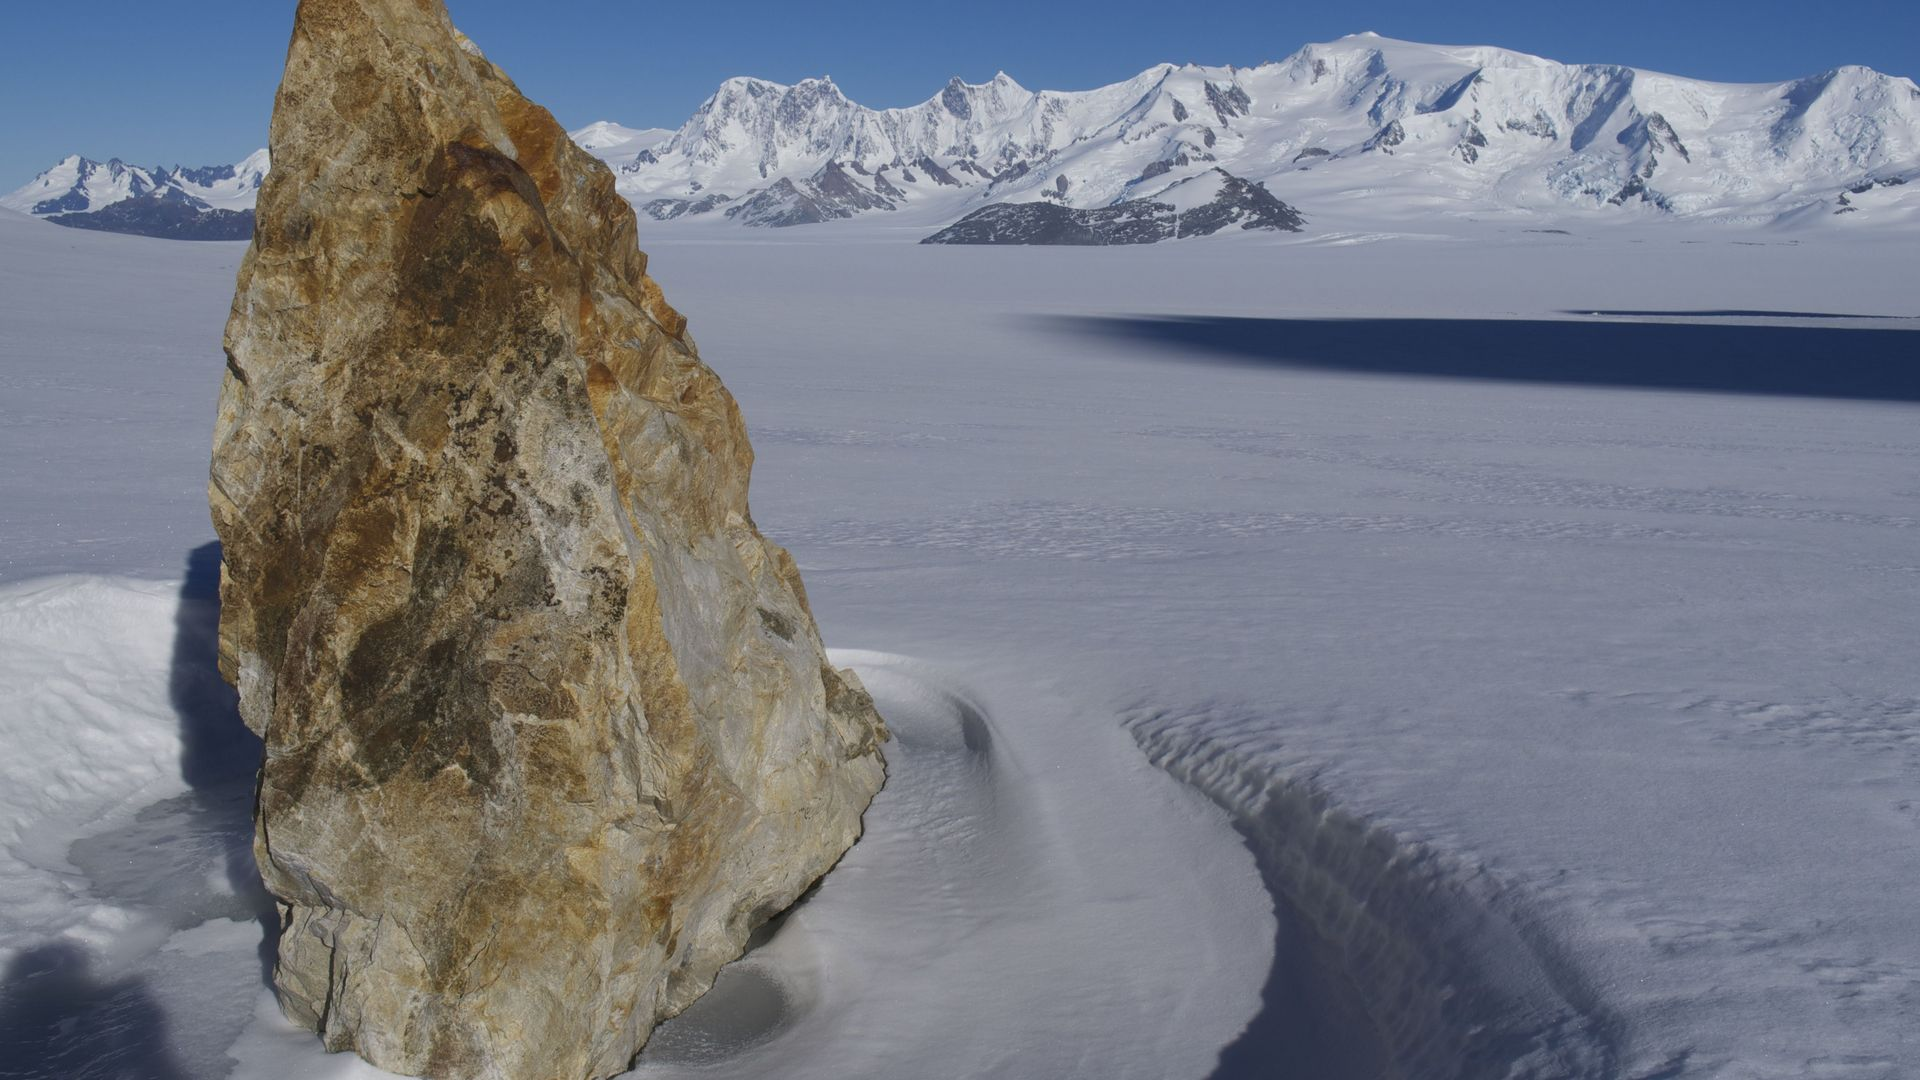 South Patagonia Icefield, Argentinien/Chile,